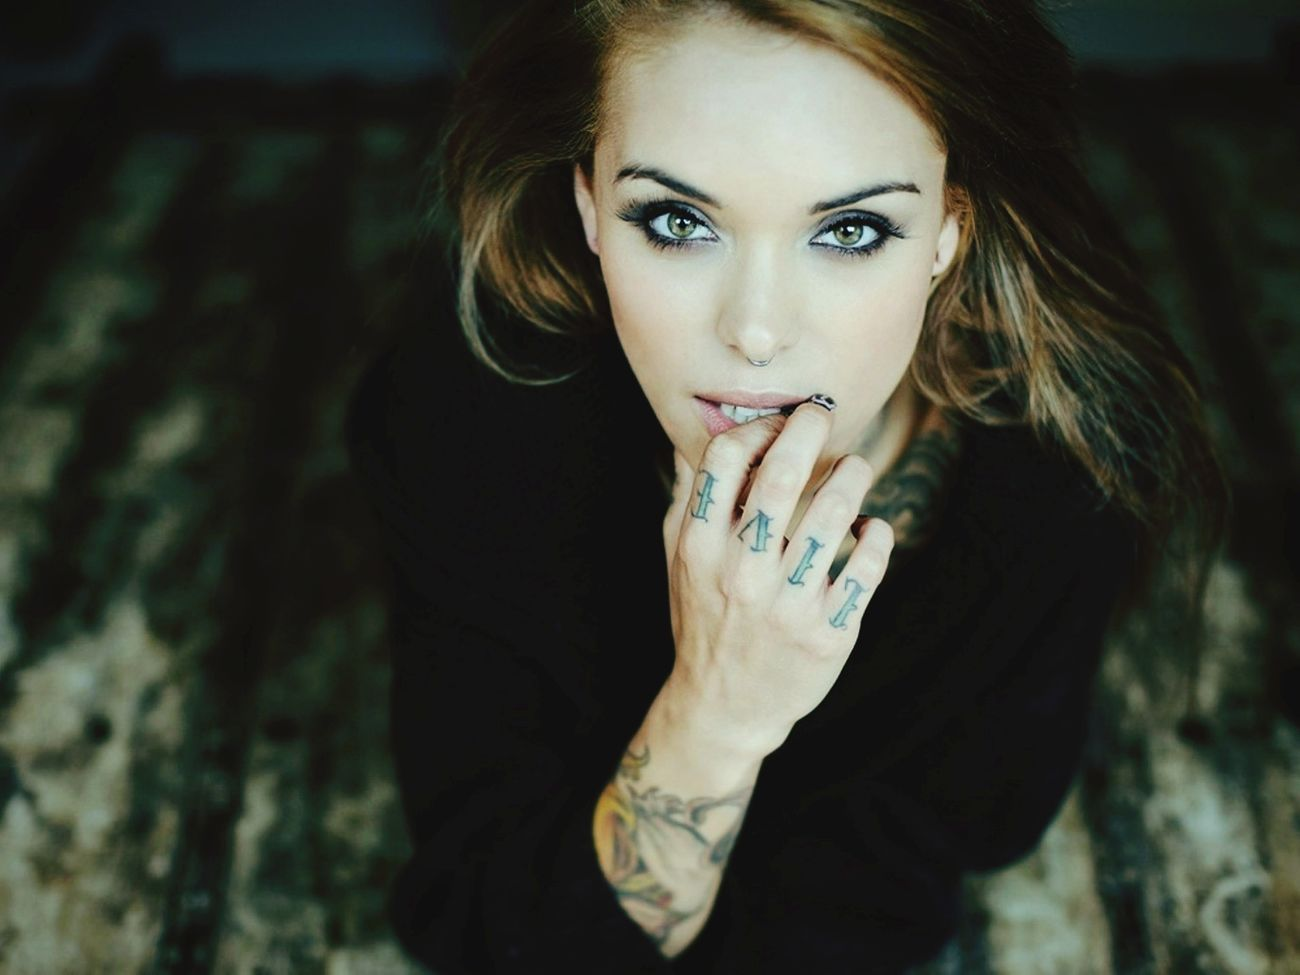 Beautiful Tattoo Lady Love It Today's Hot Look Fashion Photography Cute Artistic Hotgirl Sexygirl Hot Spring Flowers People Chick Art Taking Photos Belong Anywhere Enjoying Life Check This Out